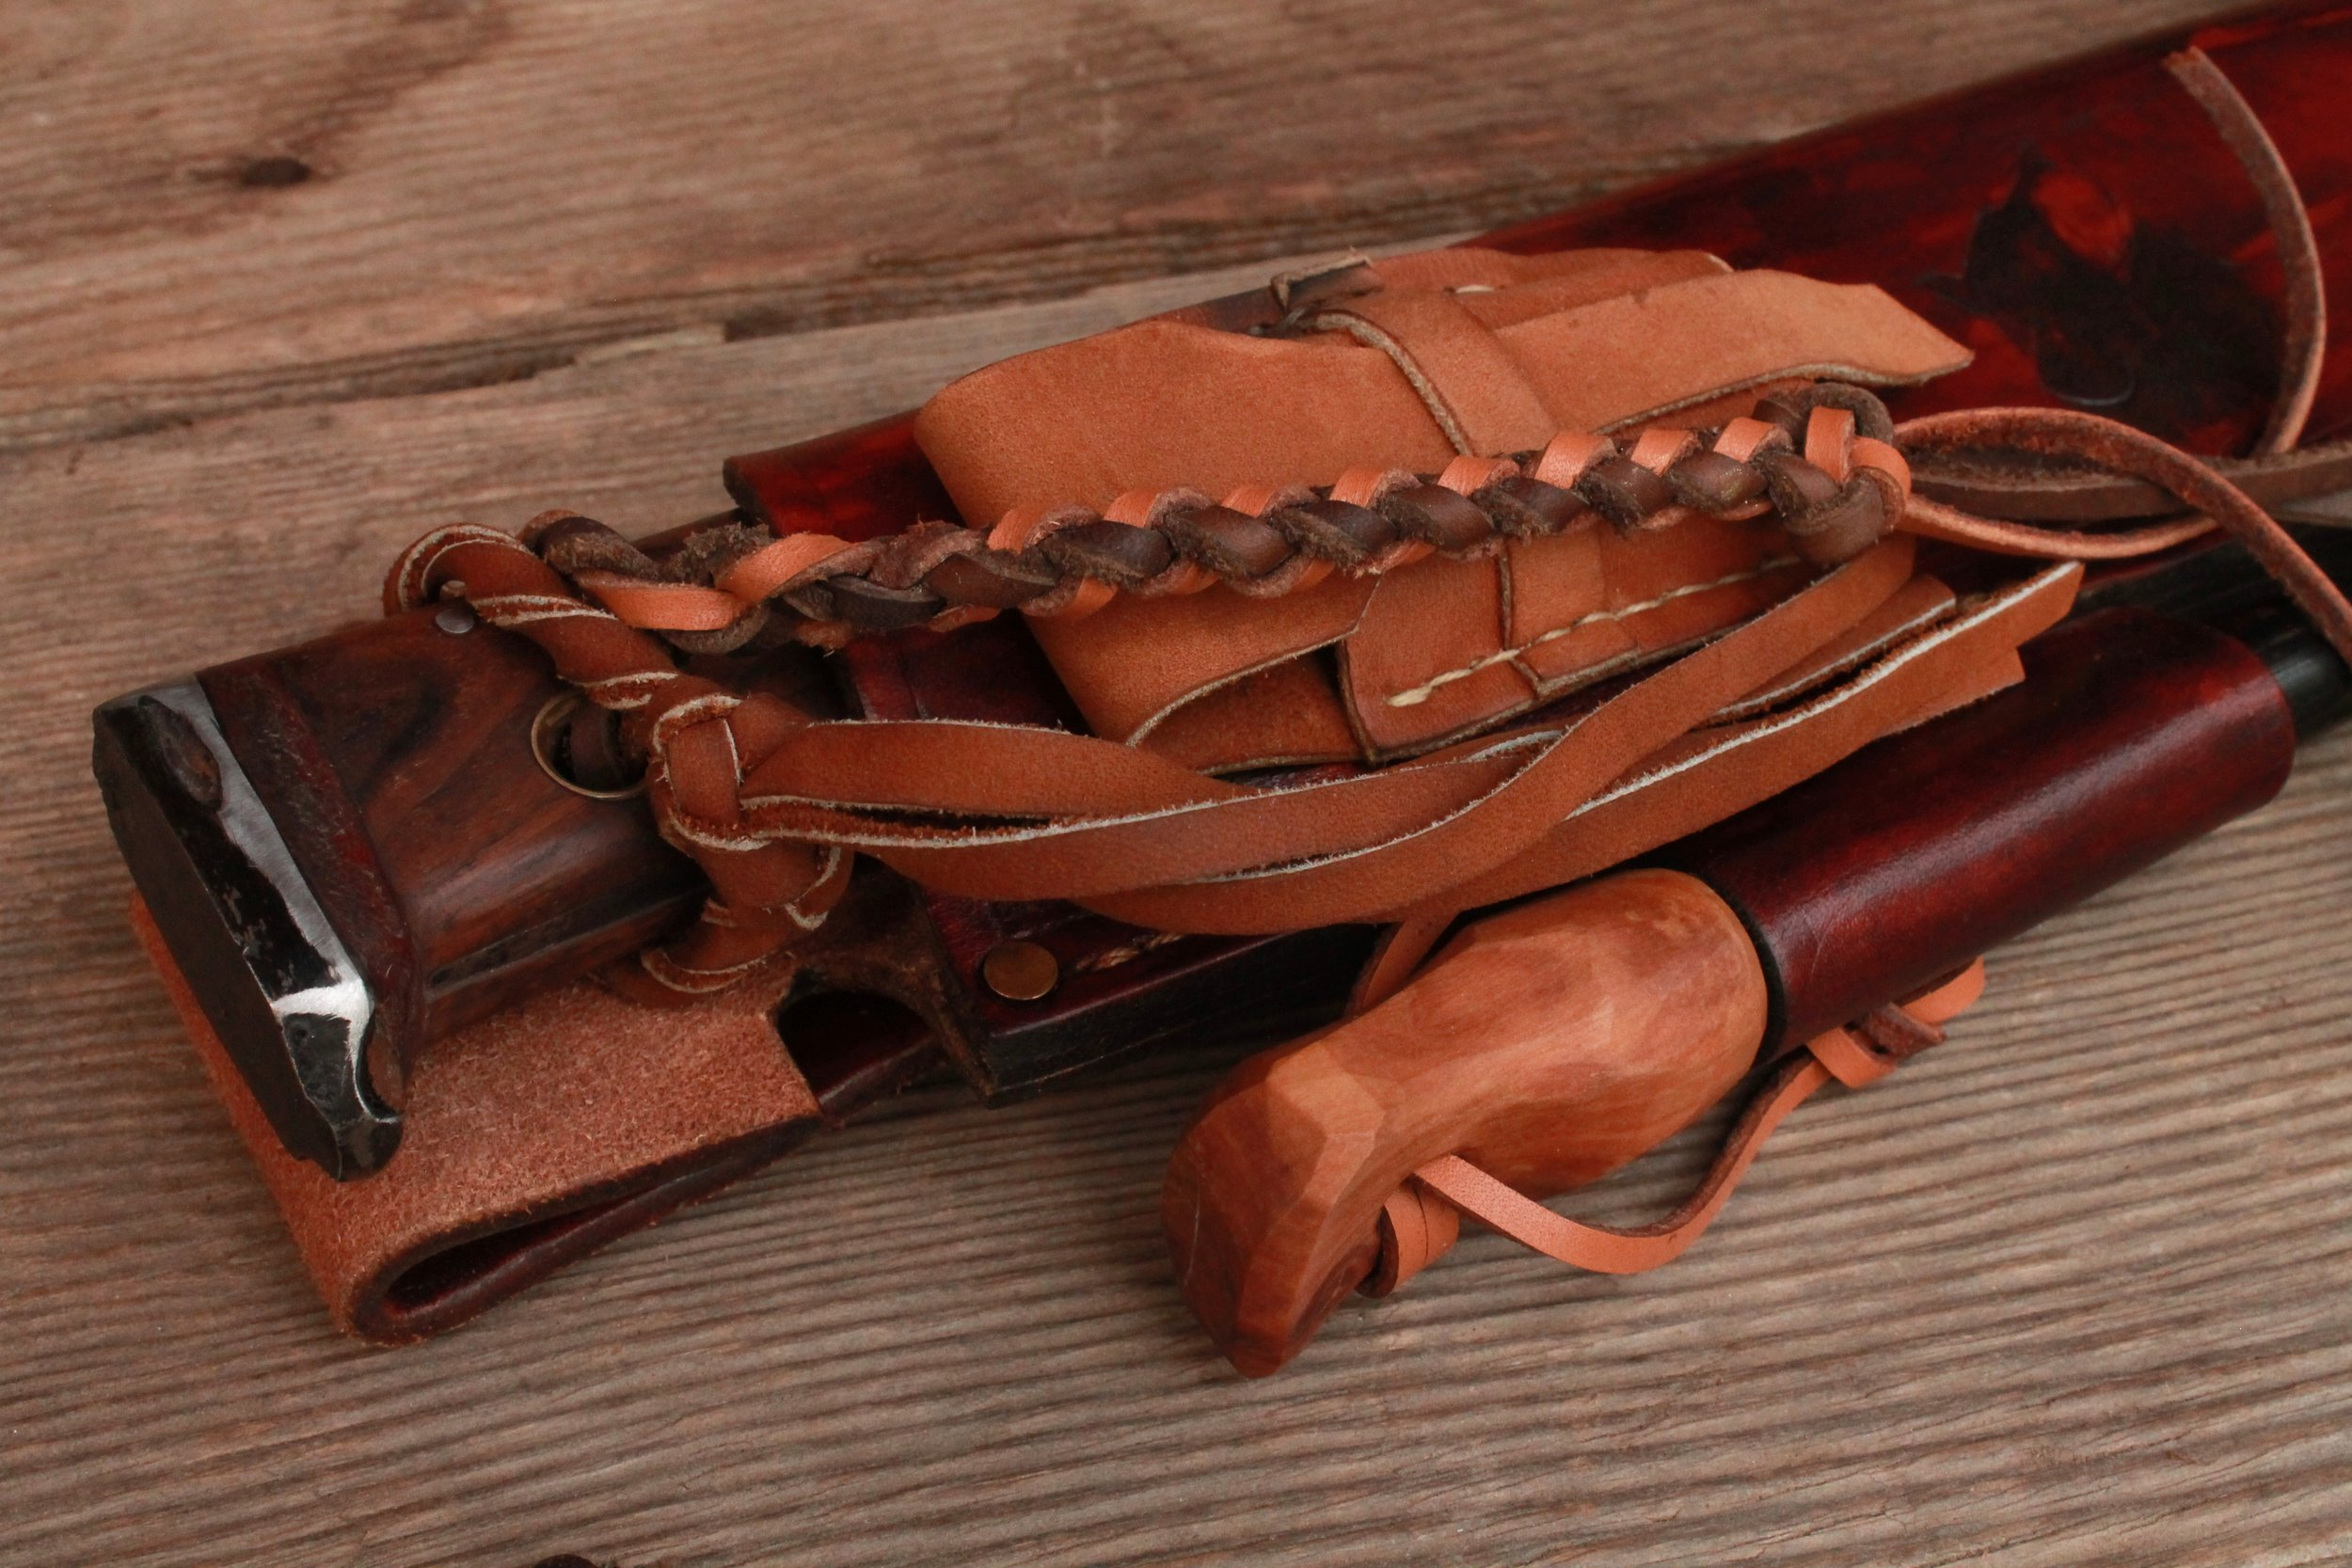 Loaded Survival Bushcraft Sheath